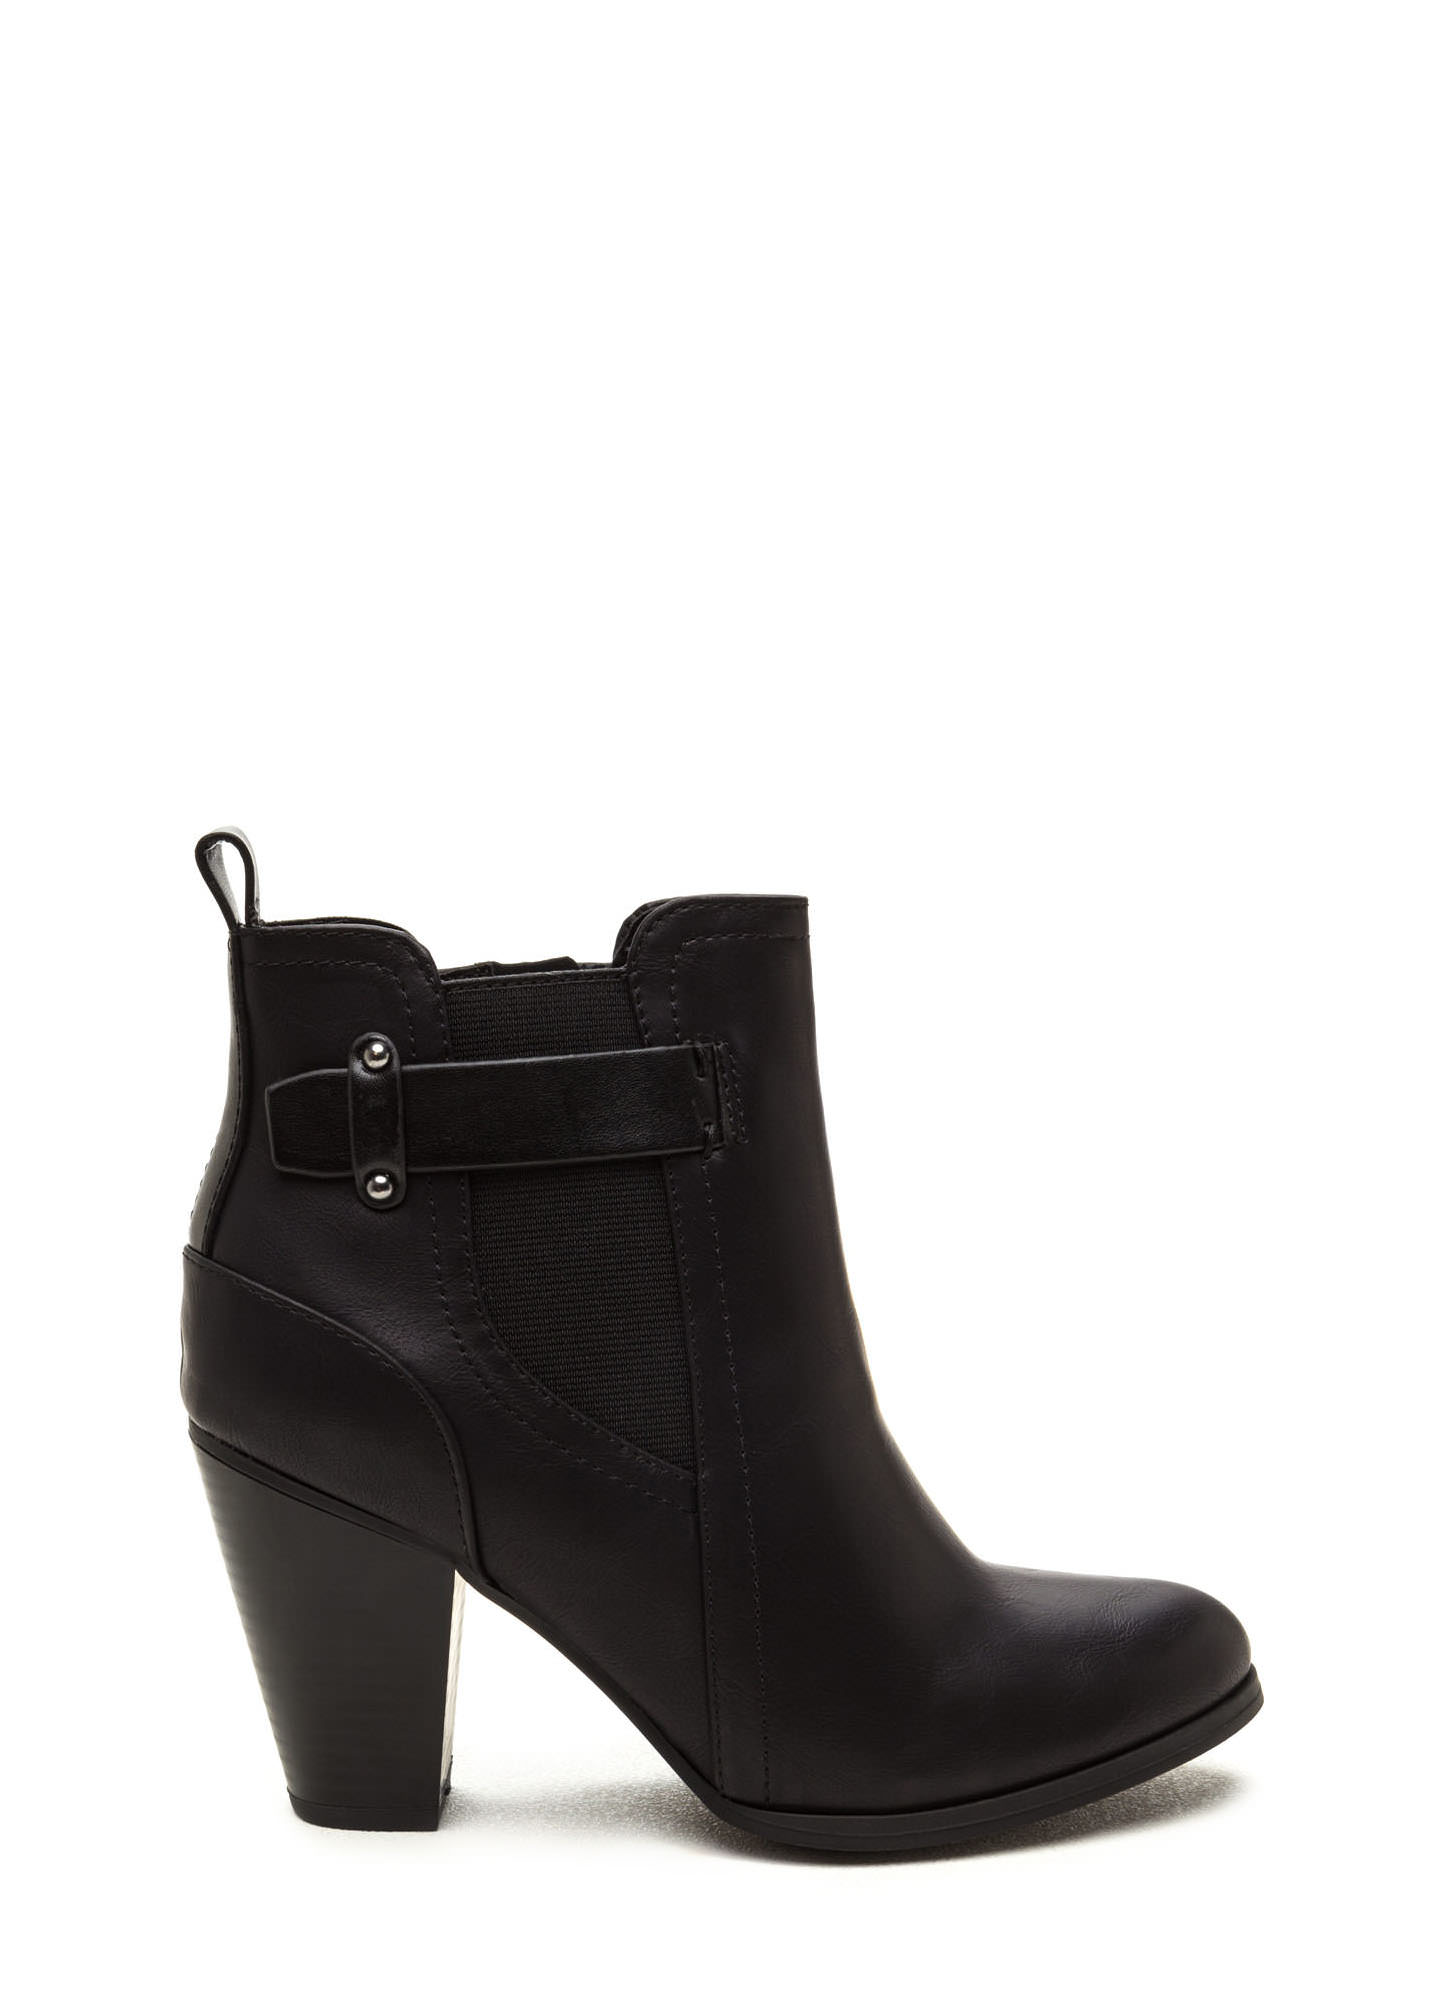 Focus On The Details Chunky Booties BLACK